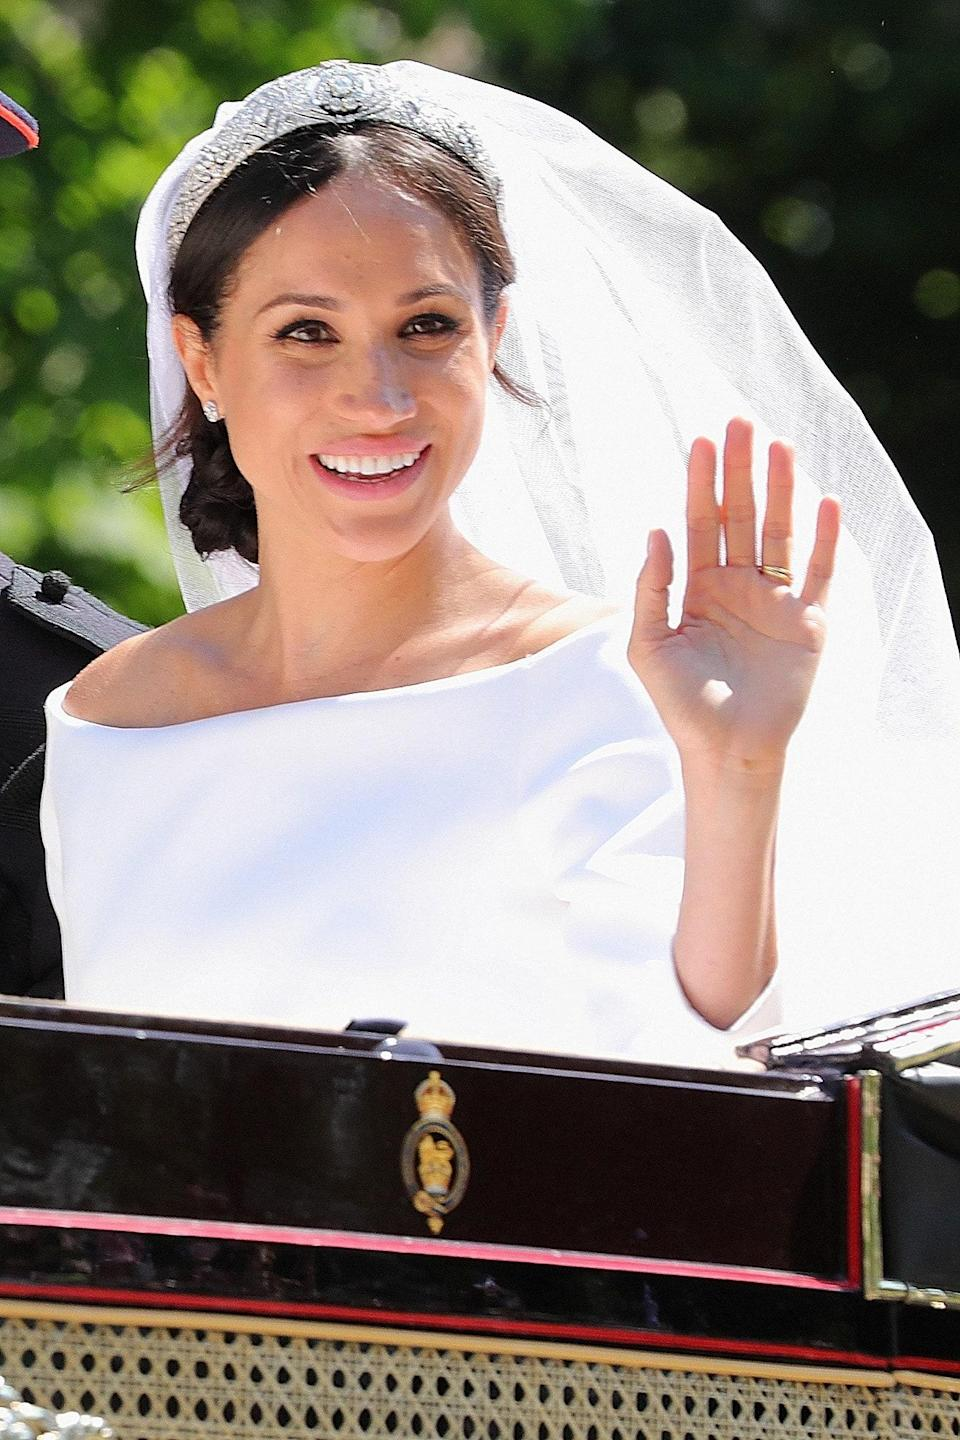 WINDSOR, ENGLAND - MAY 19: (EDITORS NOTE: Recrop of image 960063932.) Meghan, Duchess of Sussex leaves Windsor Castle in the Ascot Landau carriage during a procession after getting married at St Georges Chapel on May 19, 2018 in Windsor, England. Prince Henry Charles Albert David of Wales marries Ms. Meghan Markle in a service at St George's Chapel inside the grounds of Windsor Castle. Among the guests were 2200 members of the public, the royal family and Ms. Markle's Mother Doria Ragland. (Photo by Mark R. Milan/GC Images)